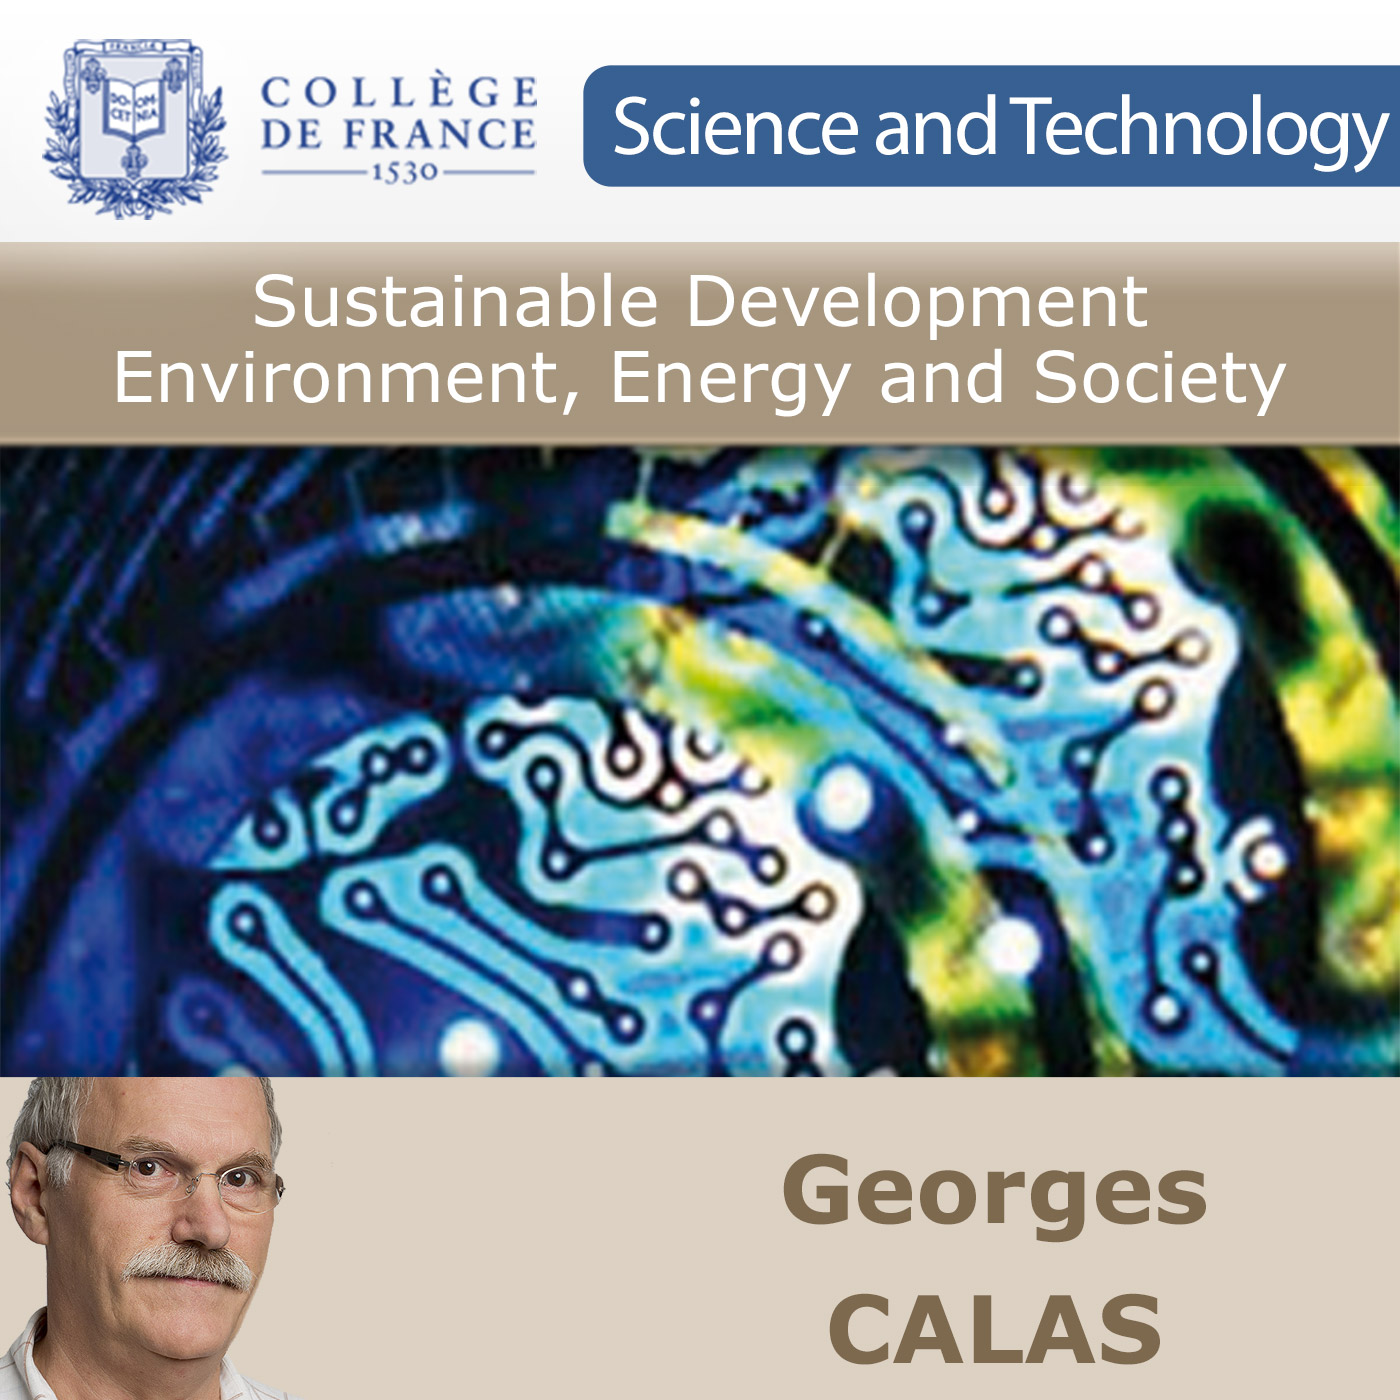 Sustainable Development - Environment, Energy and Society